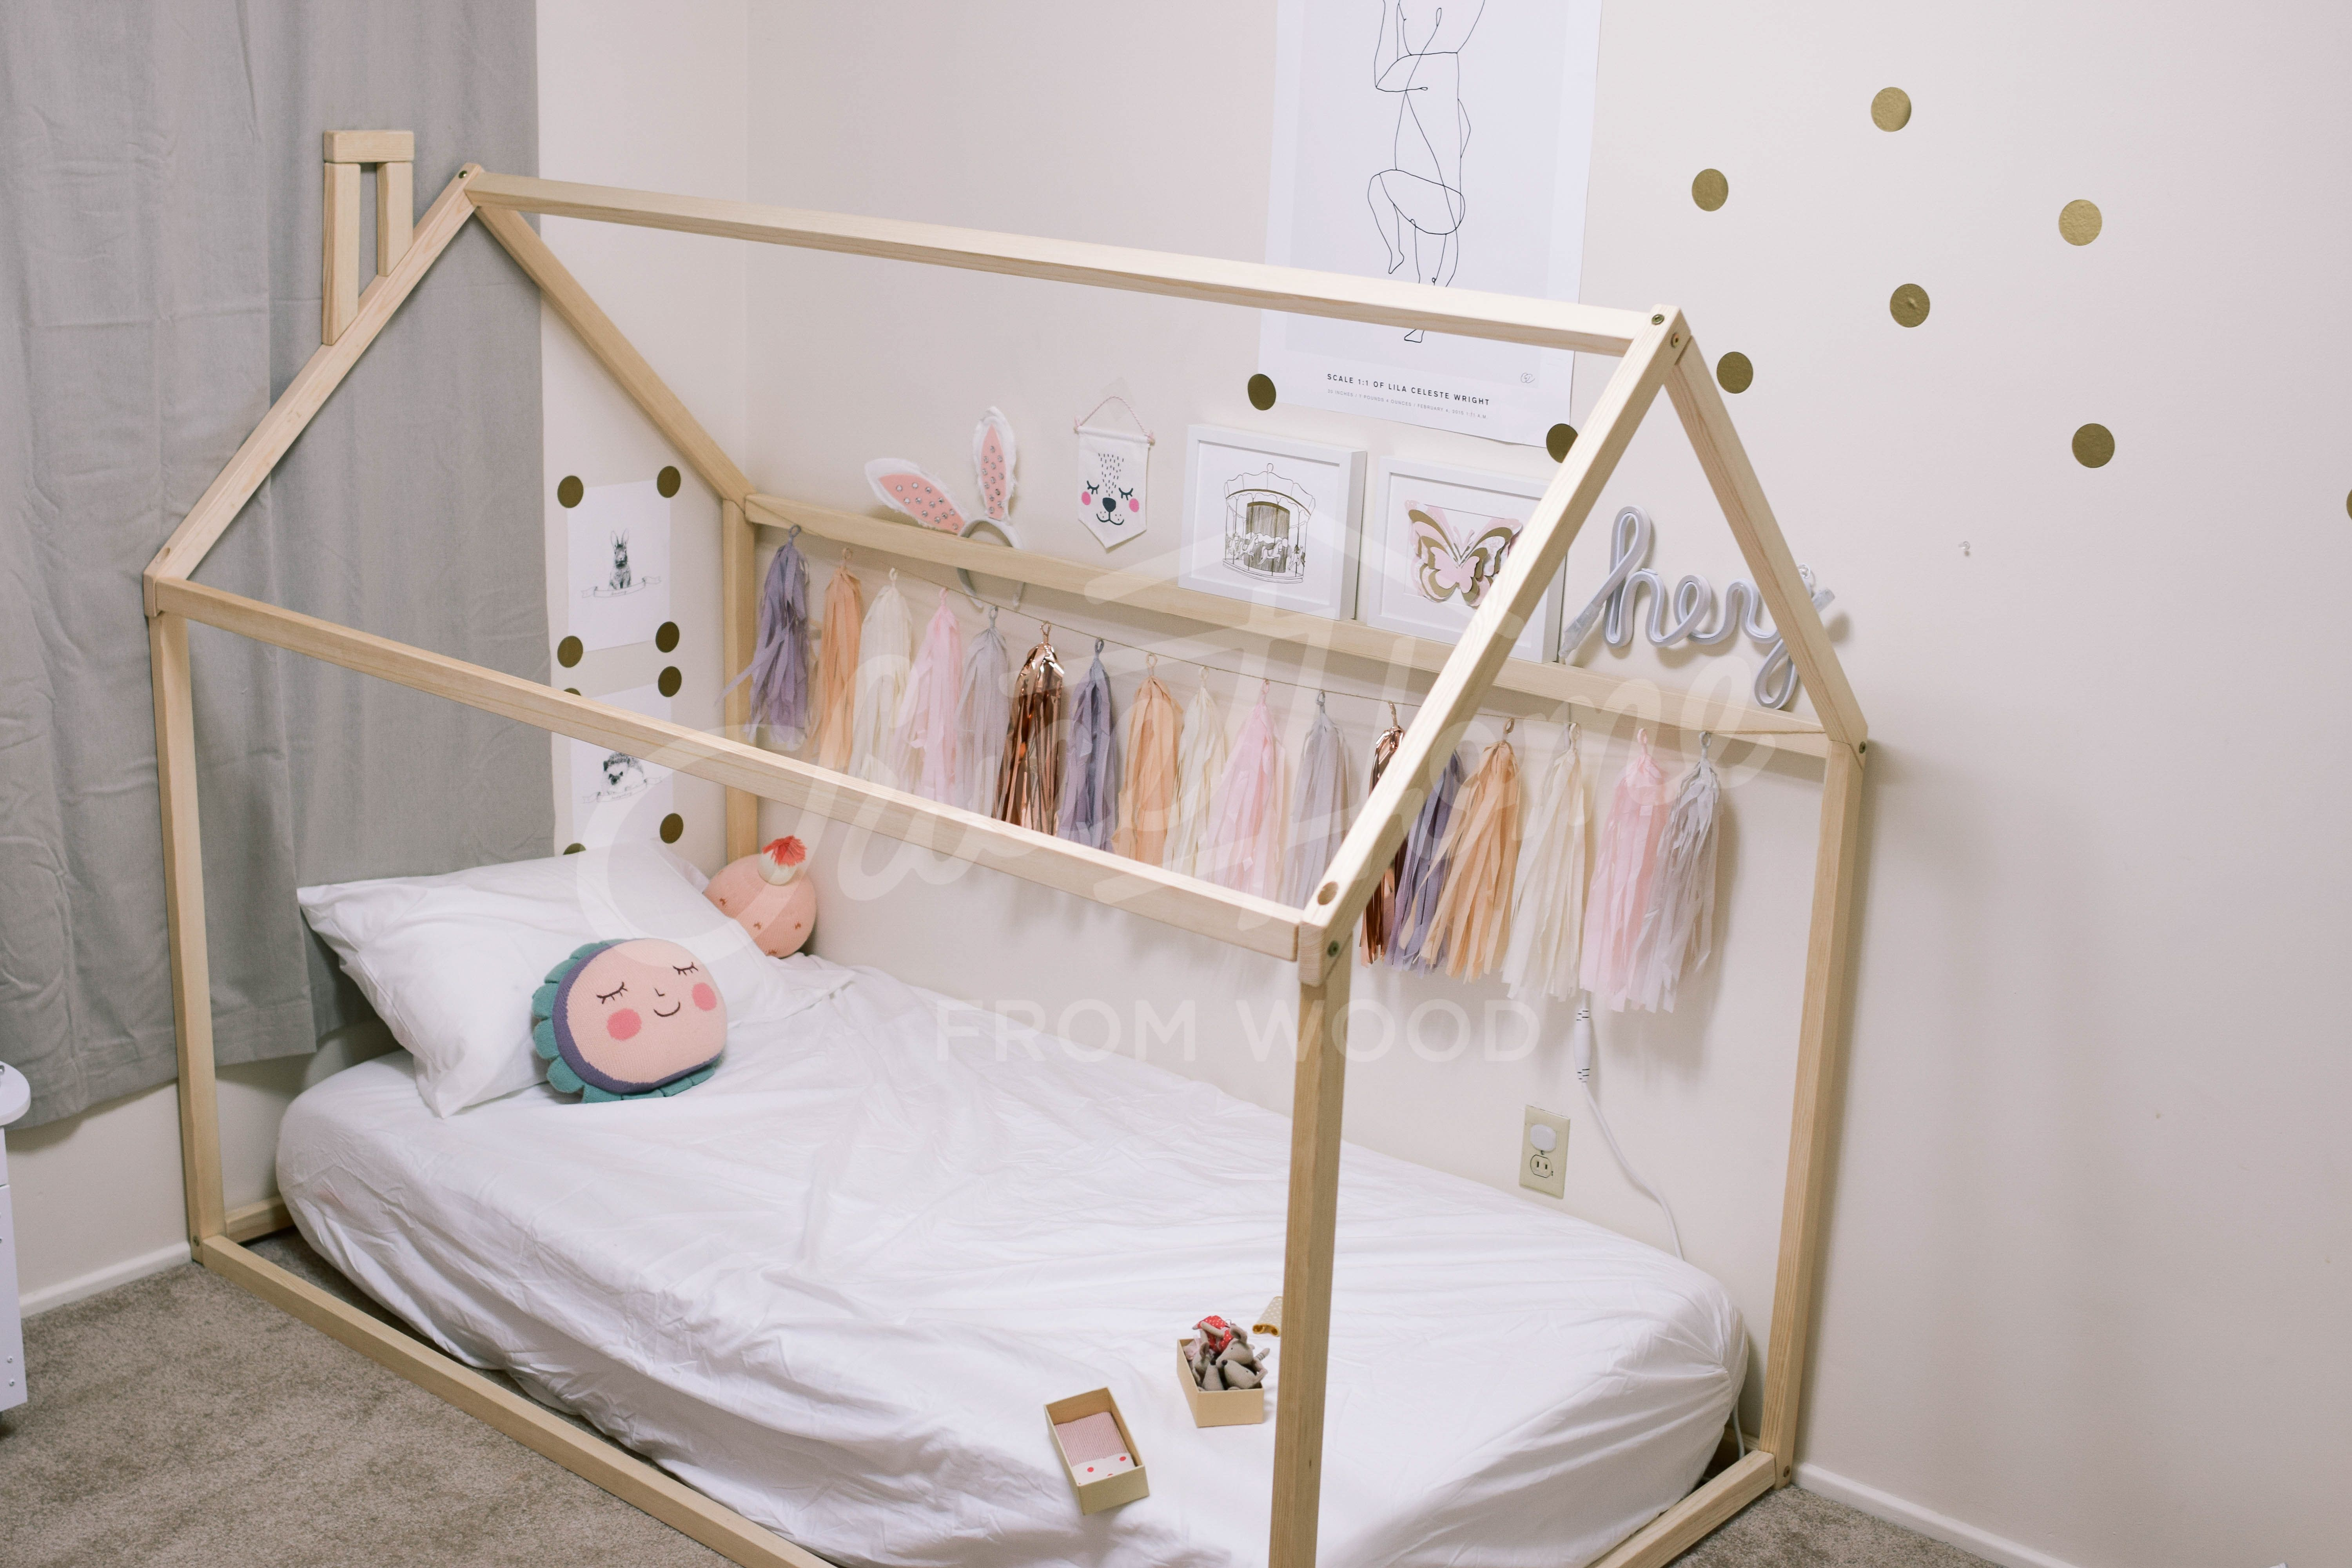 Wooden House Bed Frame Platform Bed Teepee Bed Wood Bed Etsy In 2020 House Frame Bed Bed Tent House Beds